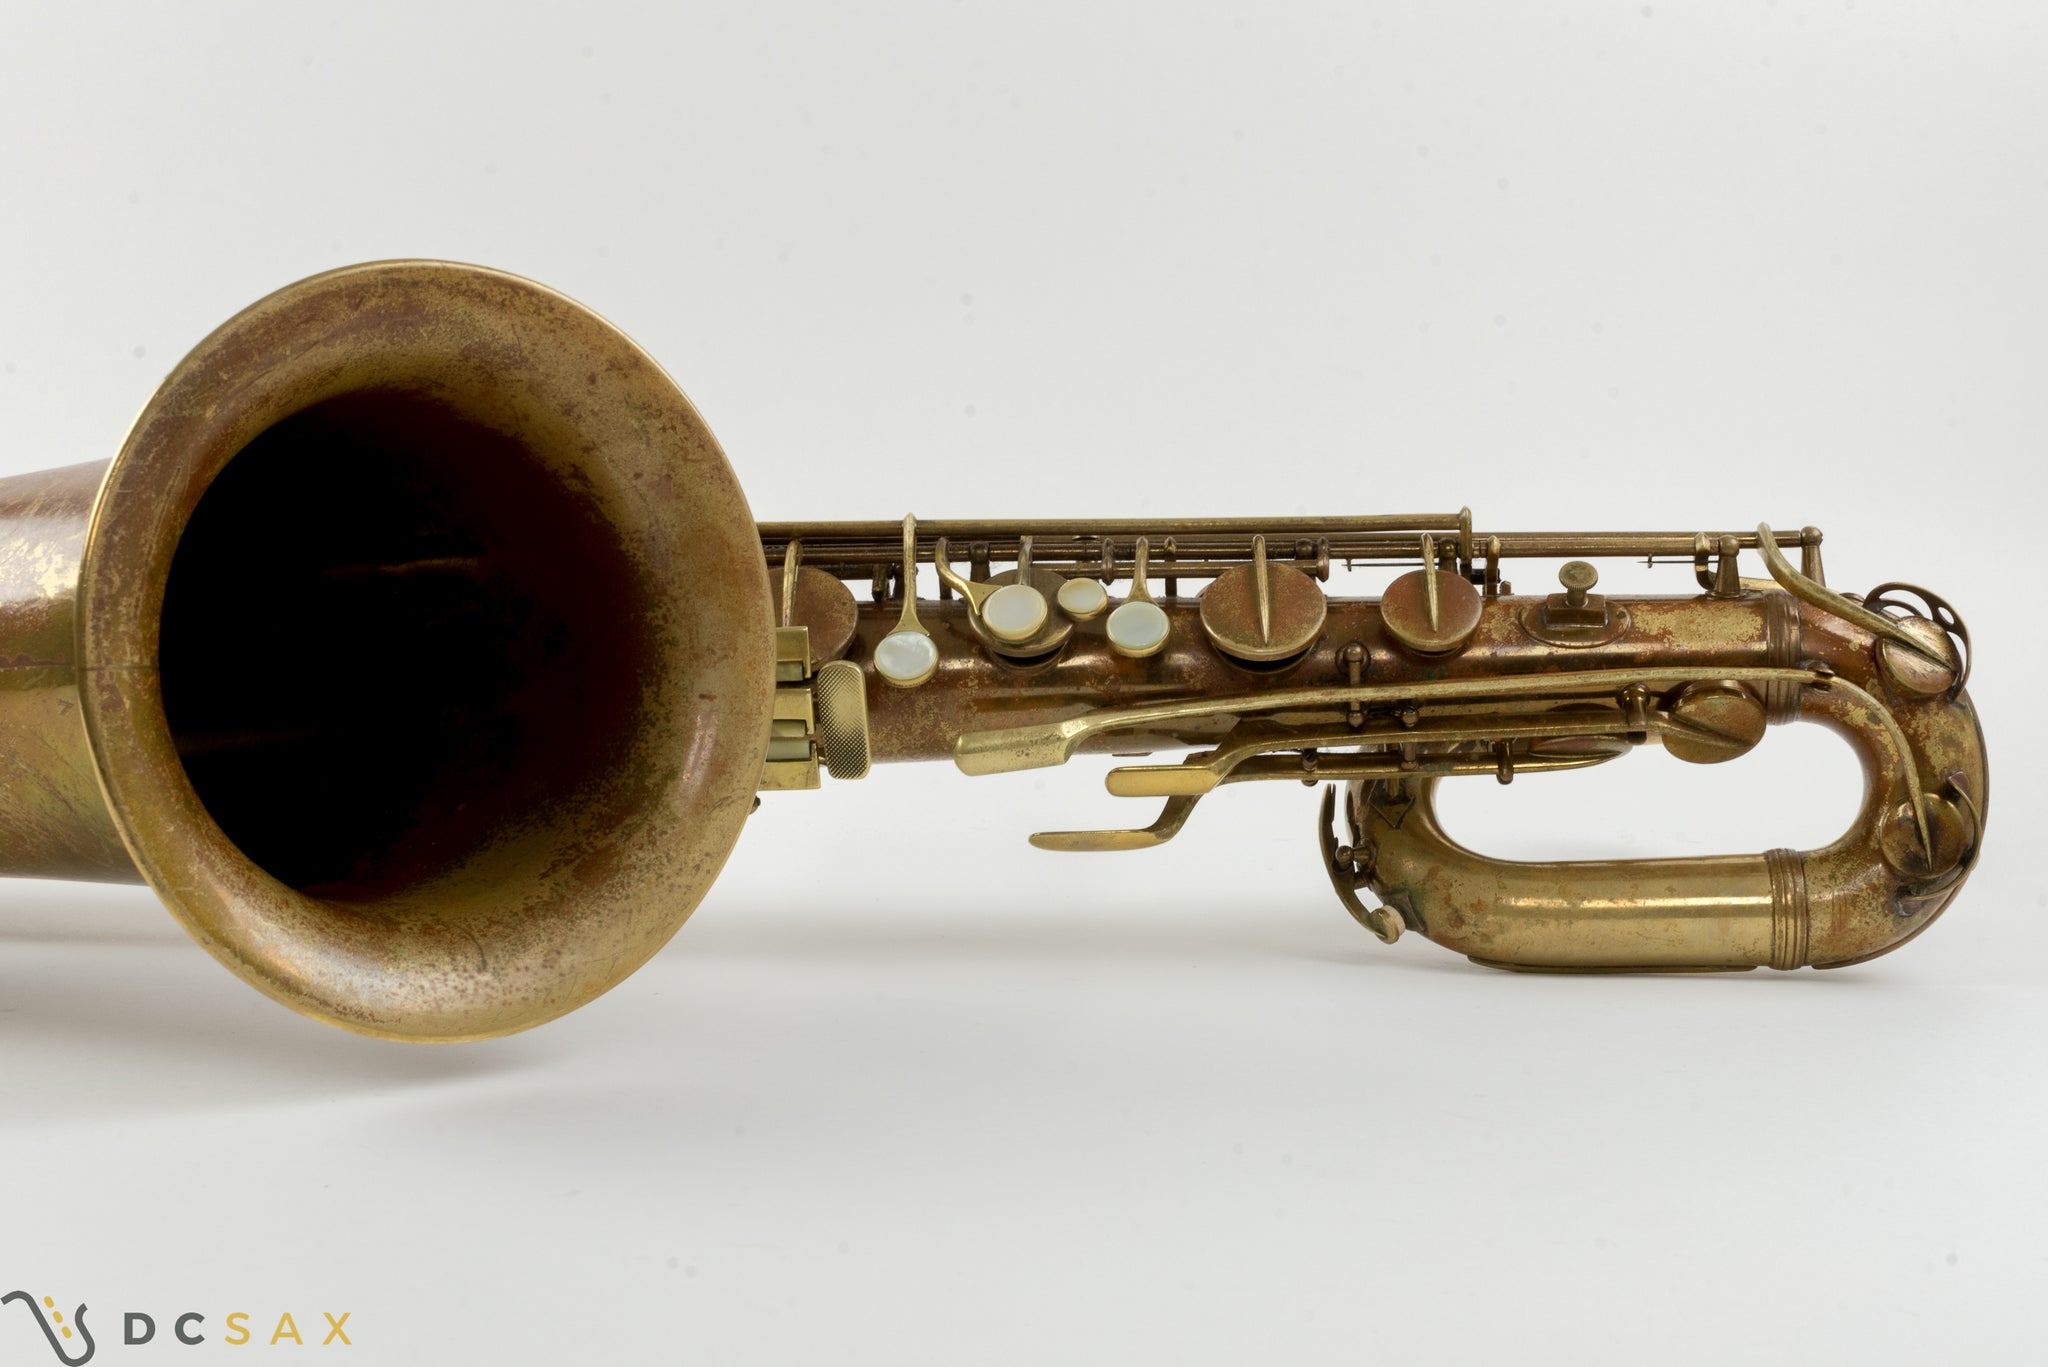 Conn 12M Transitional Baritone Saxophone, Owned by Bob Gioga, Kenton Member